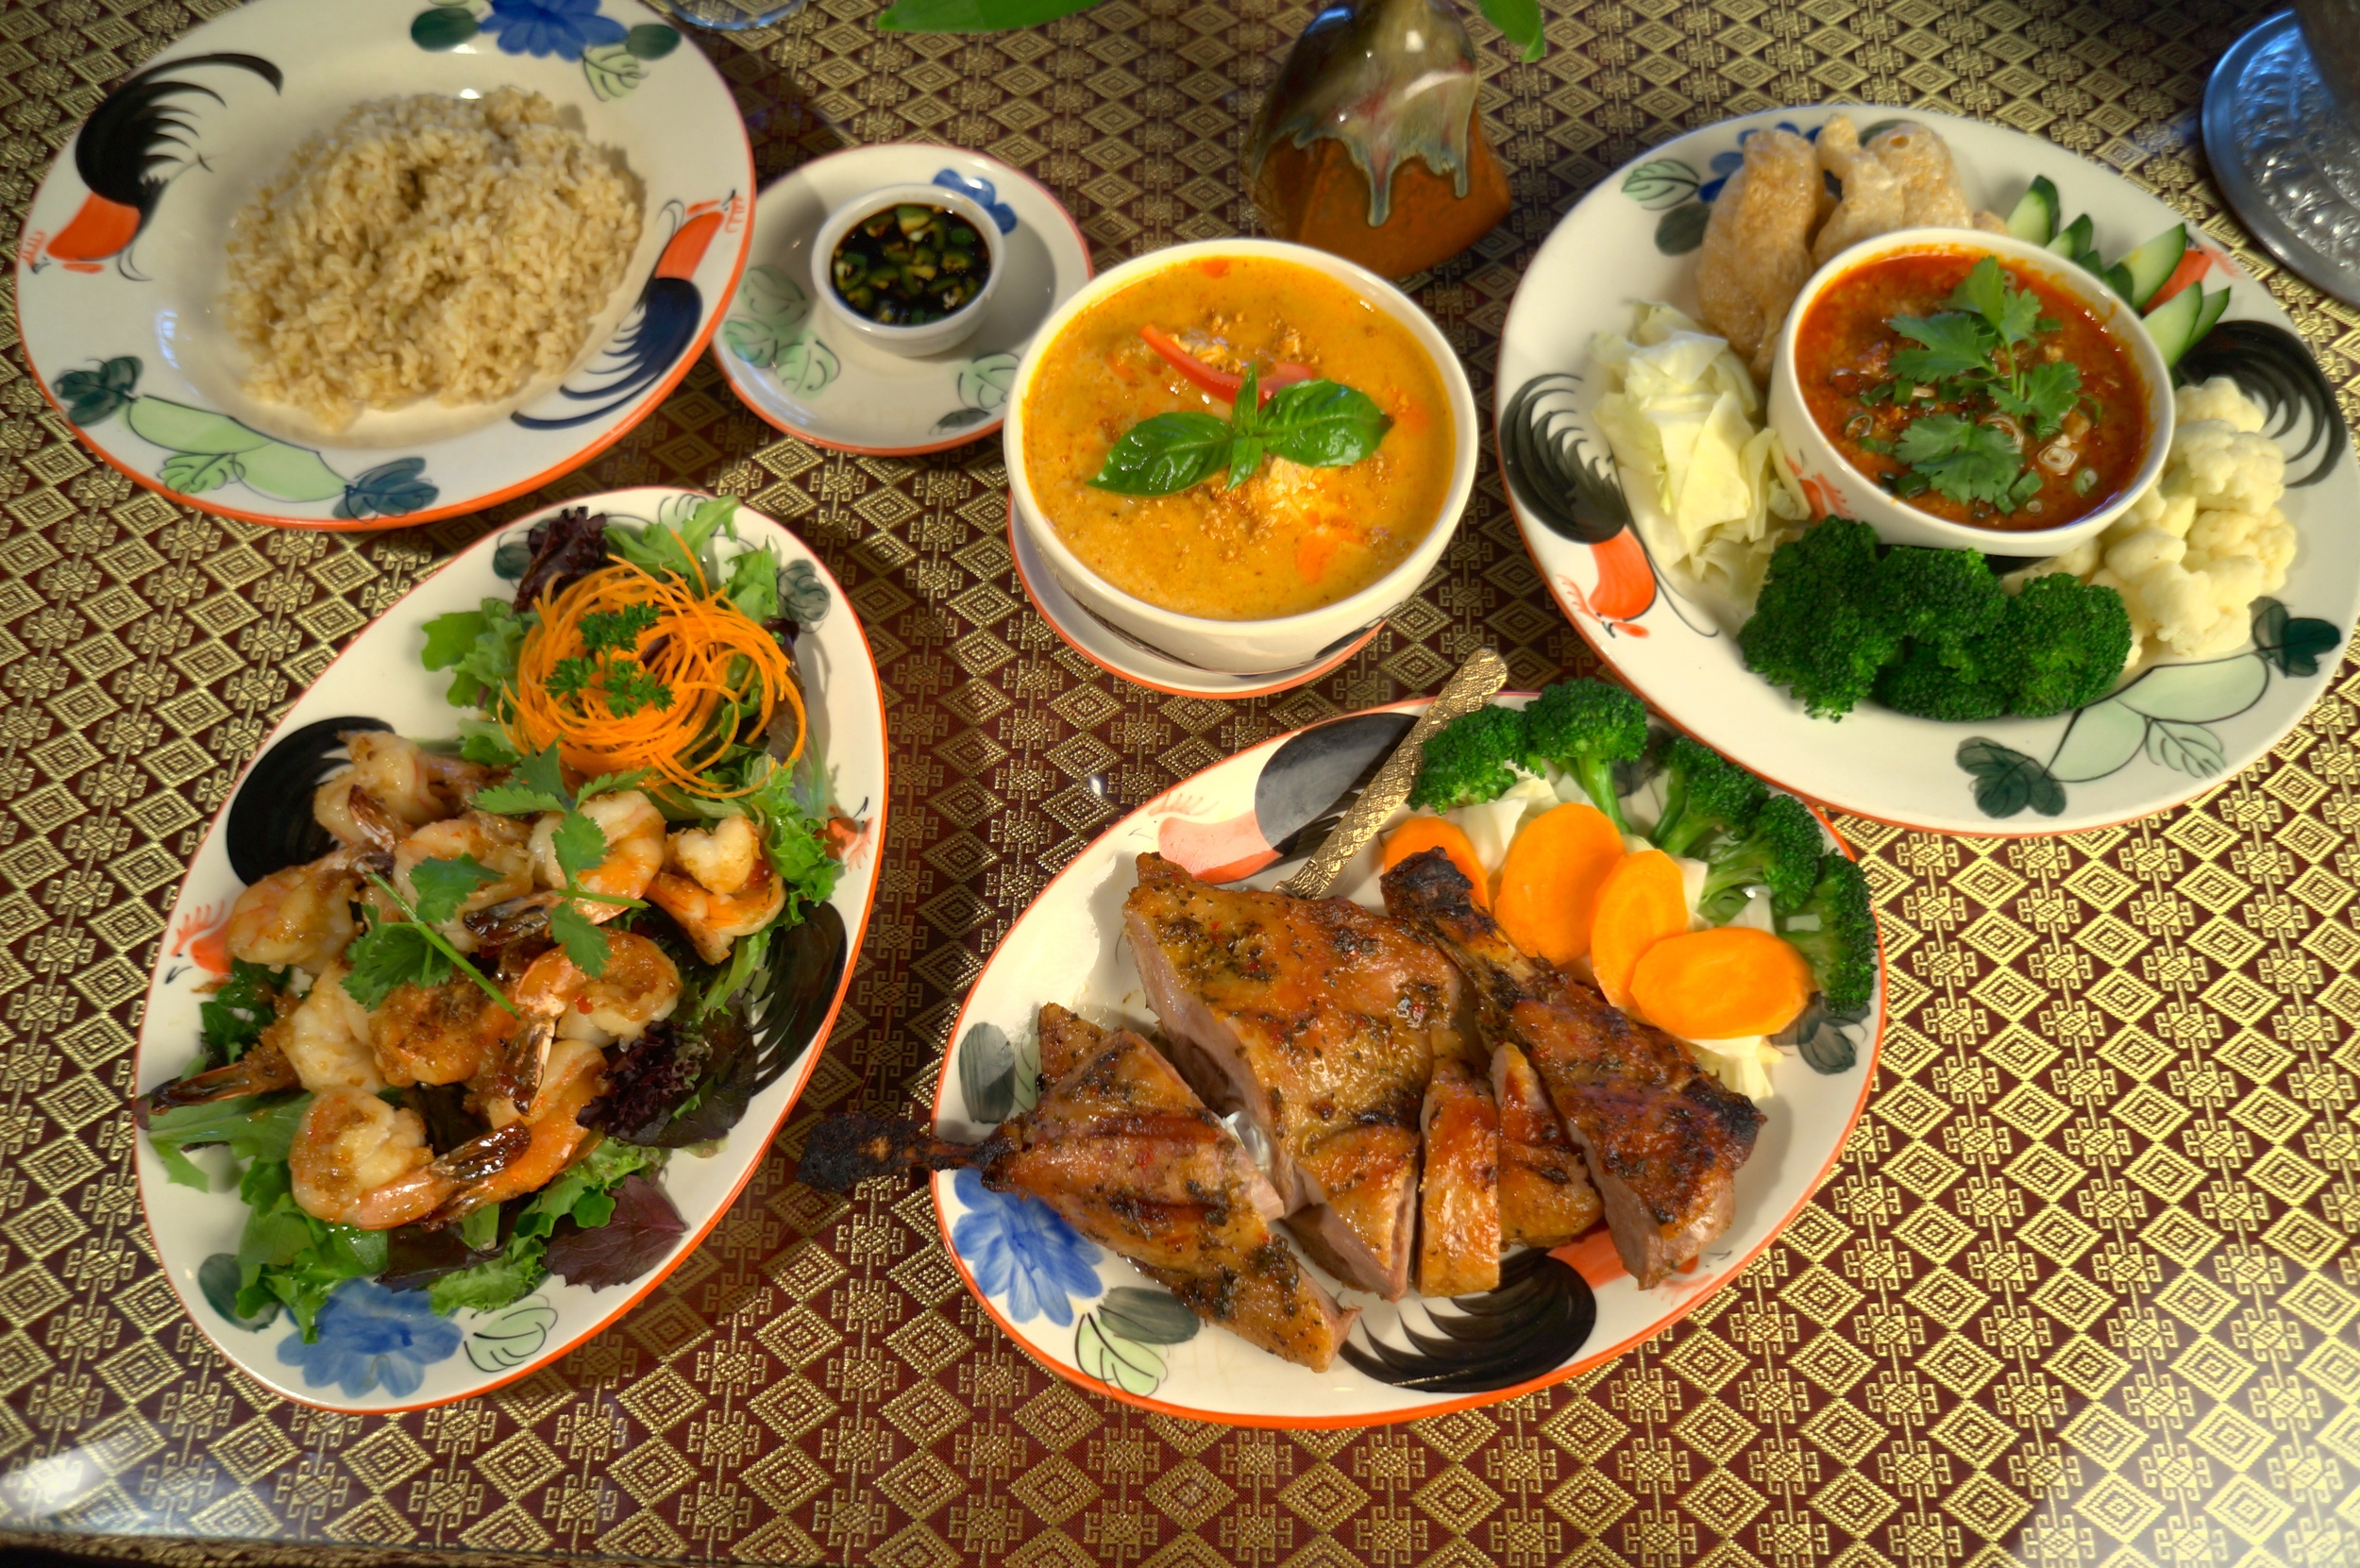 Lemongrass Thai Cuisine